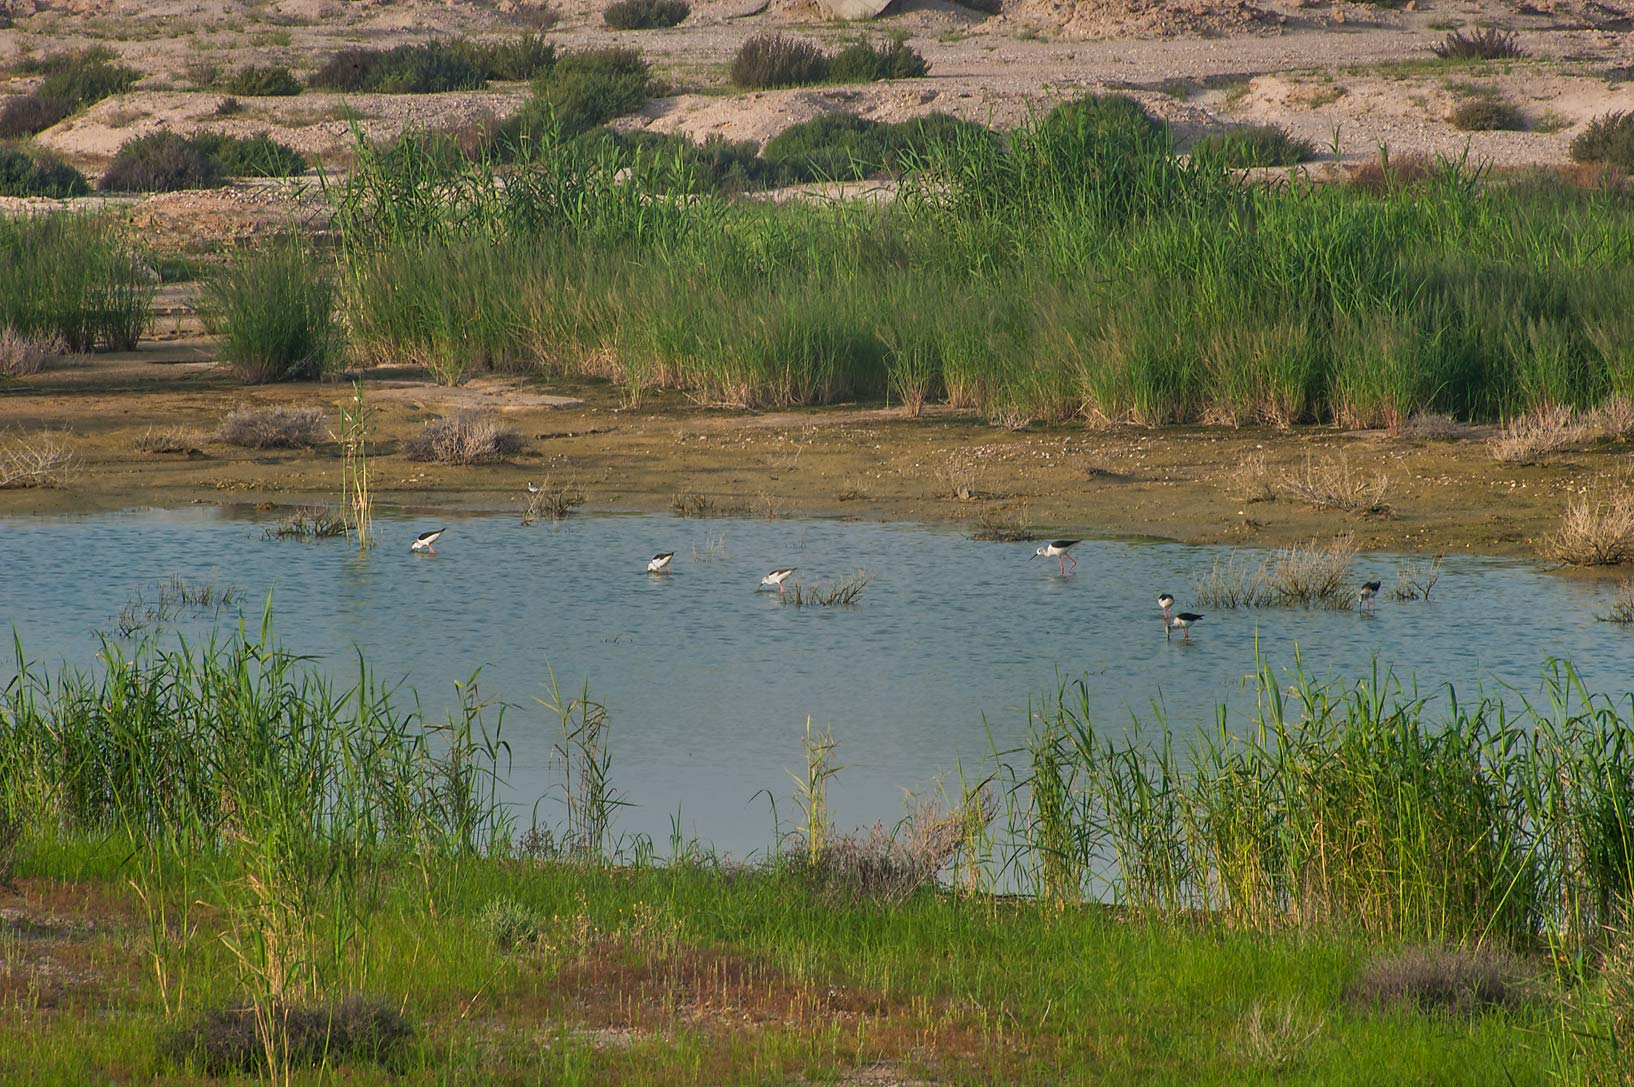 Wading birds in a pond outside of Green Circles...Irkaya) Farms. South-western Qatar